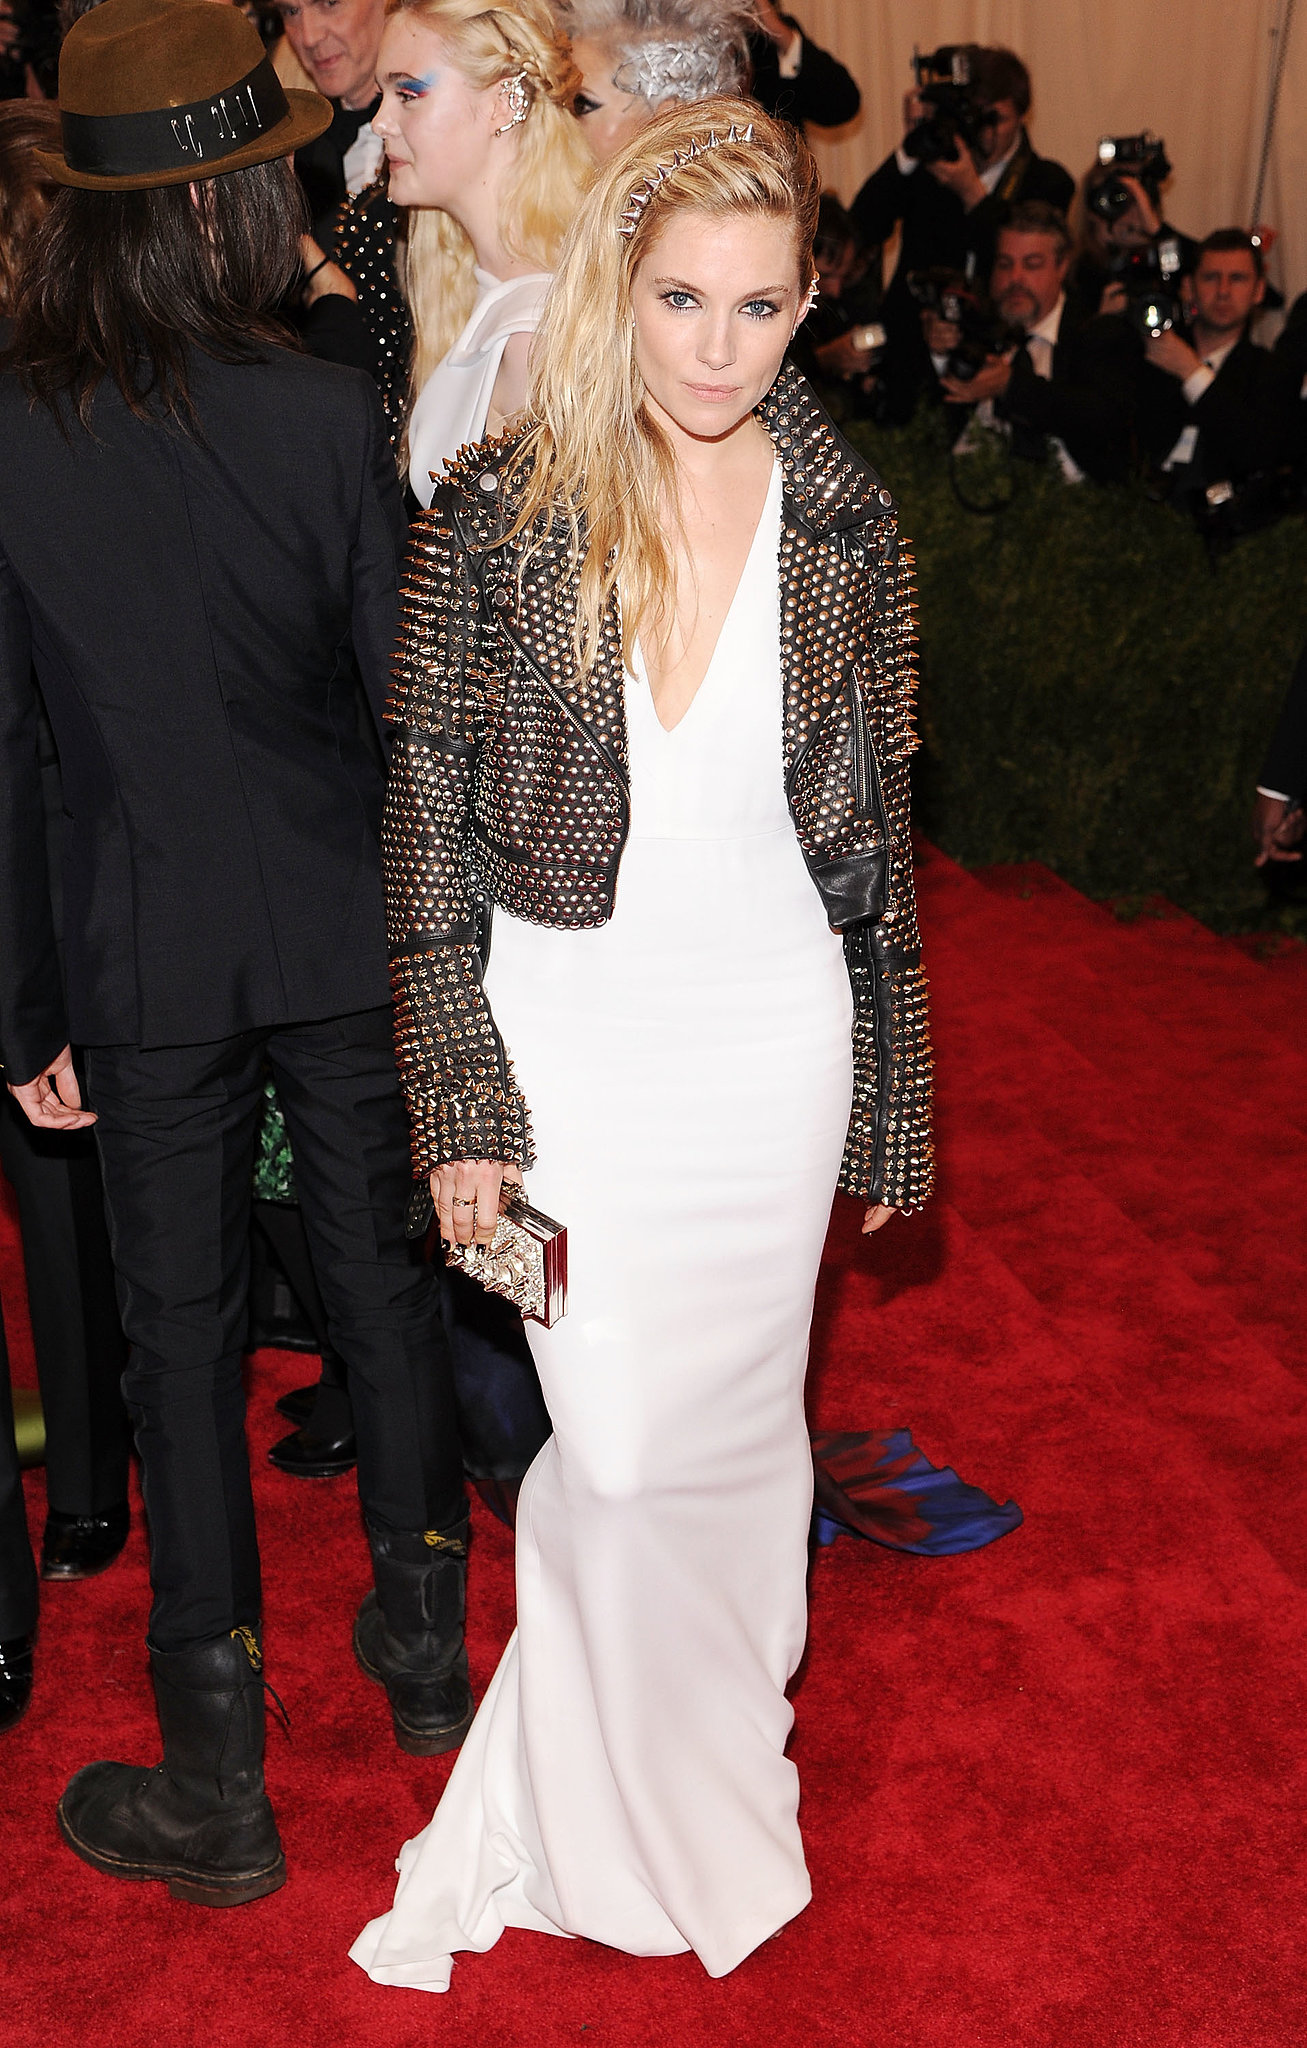 Let's all take a moment to appreciate the punk-princess realness Sienna gave us at the 2013 Met Gala. [silence] The actress decided to contrast her fluid crepe white gown with a black studded leather biker jacket, both by Burberry, and a matching spiked headband.